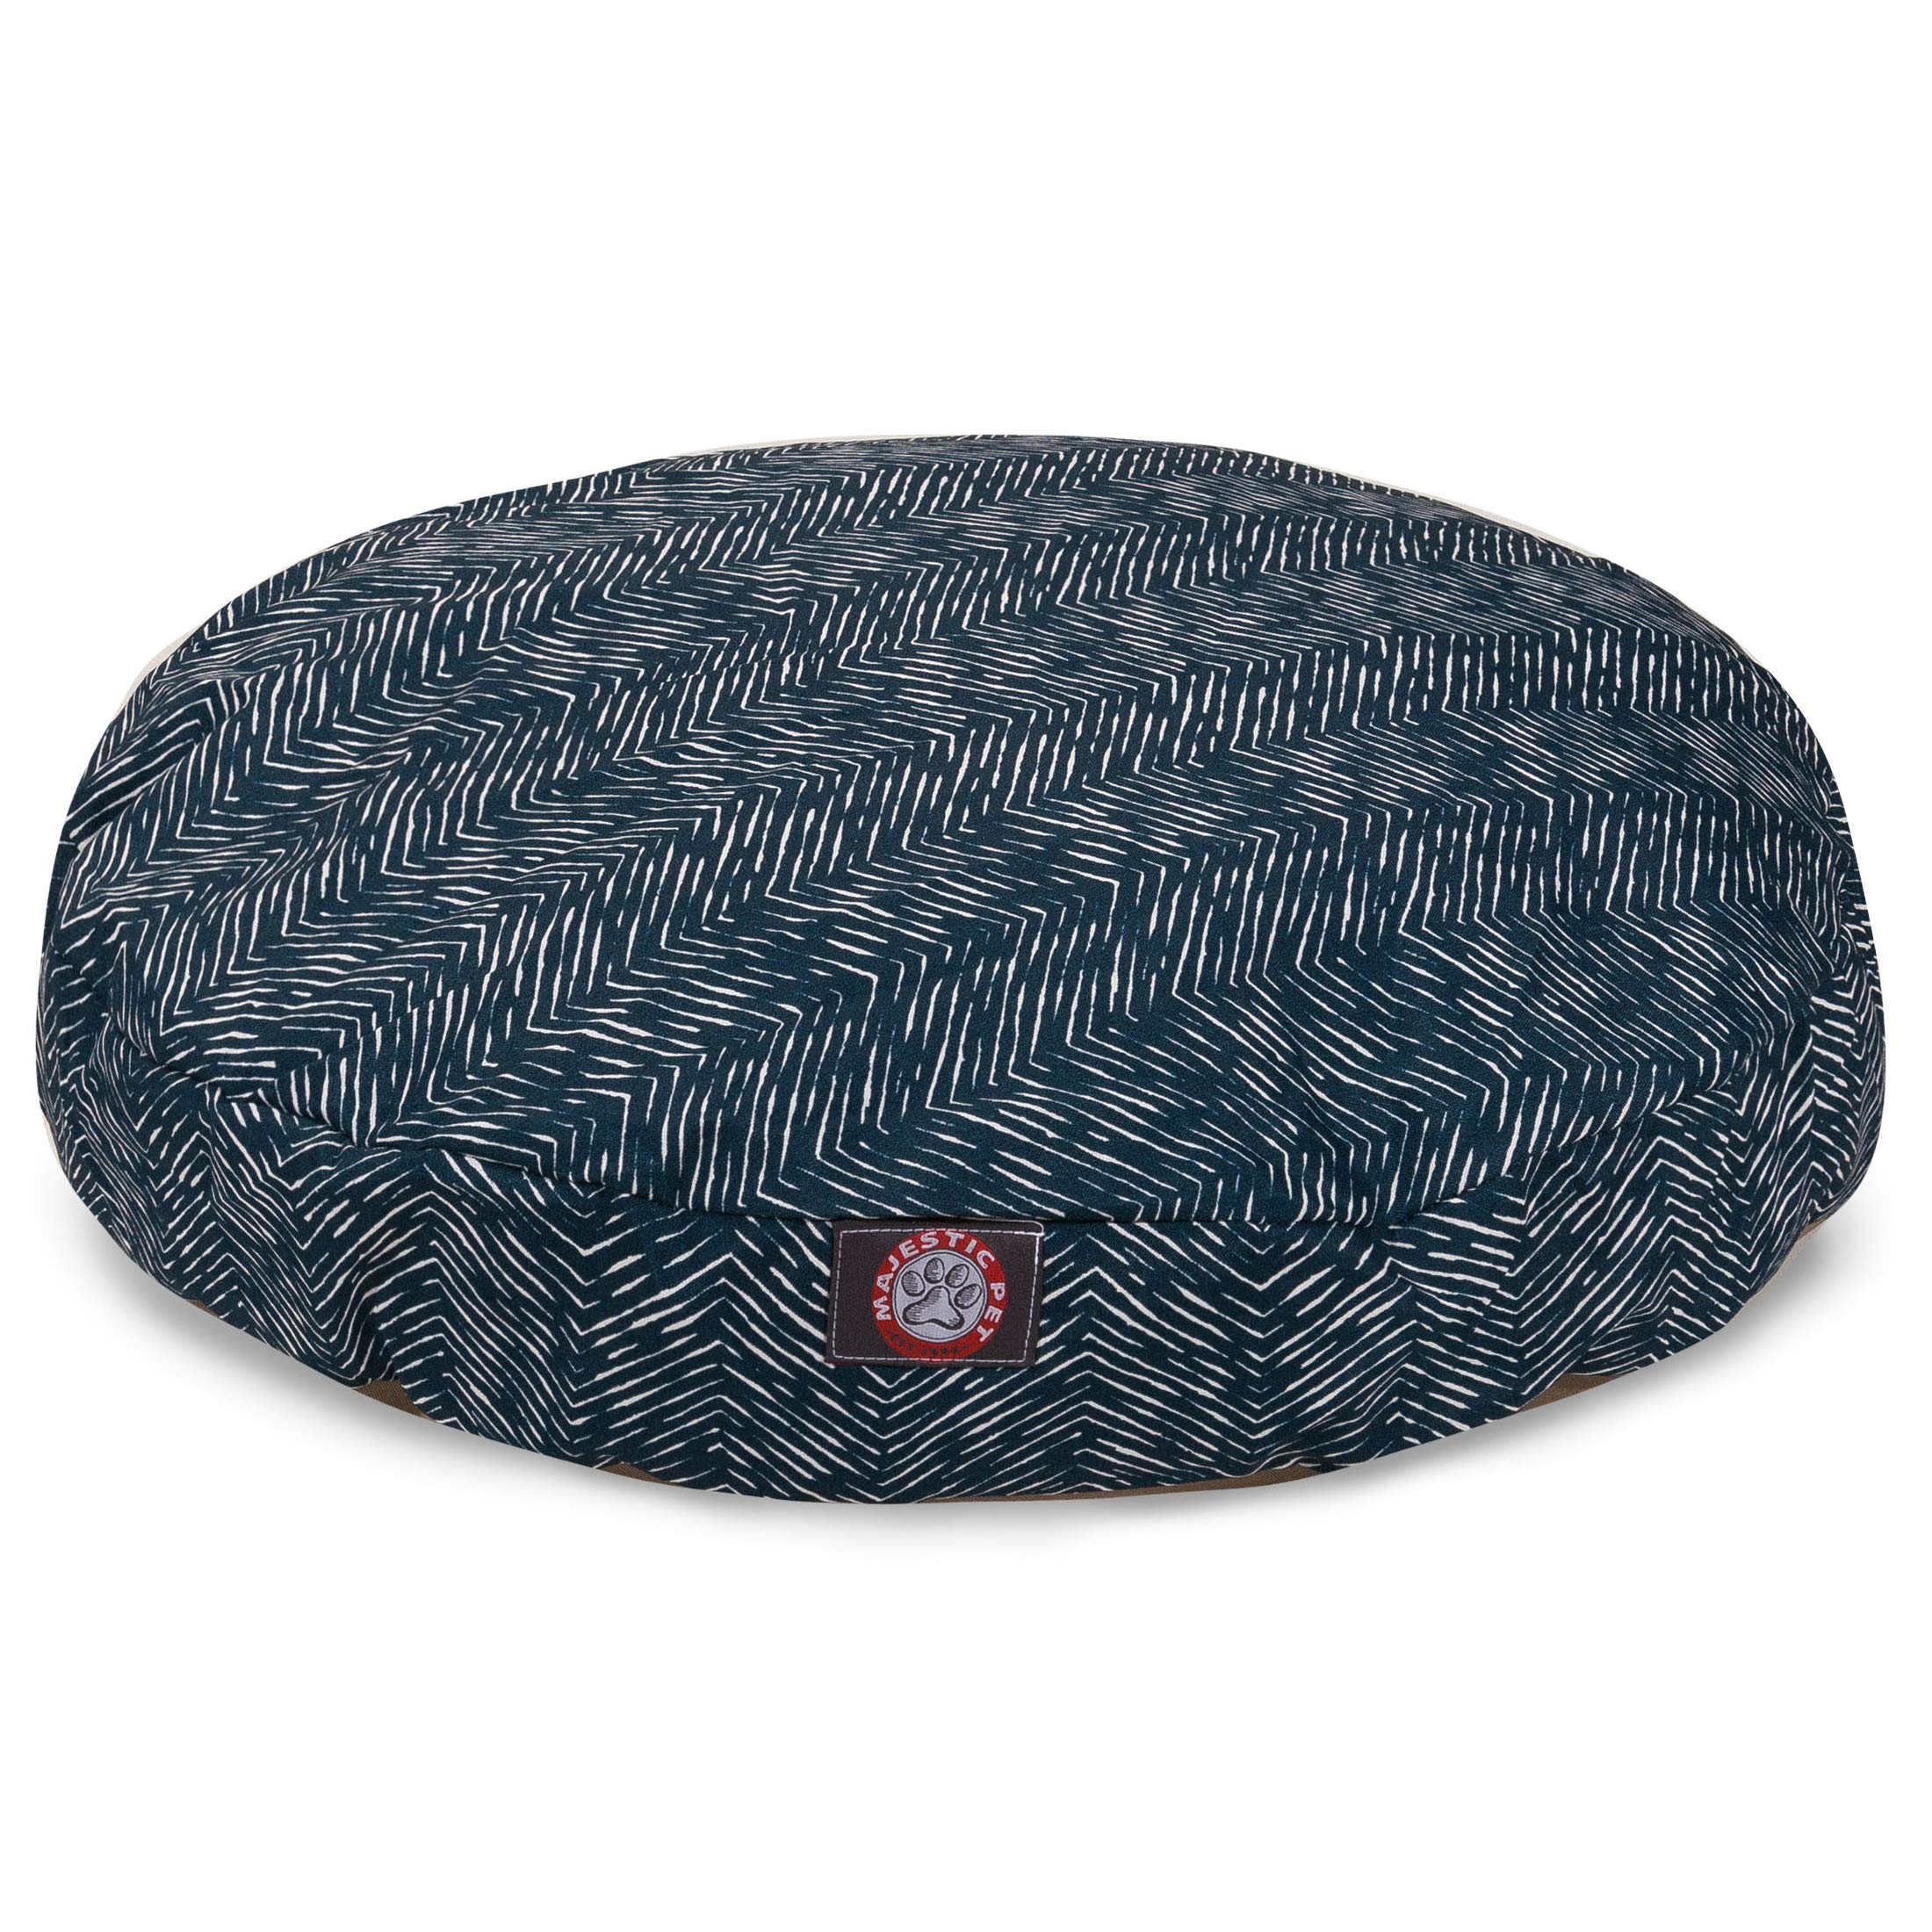 Majestic Pet Navy Blue Native Medium Round Indoor Outdoor Pet Dog Bed with Removable Washable Cover Products by Majestic Pet